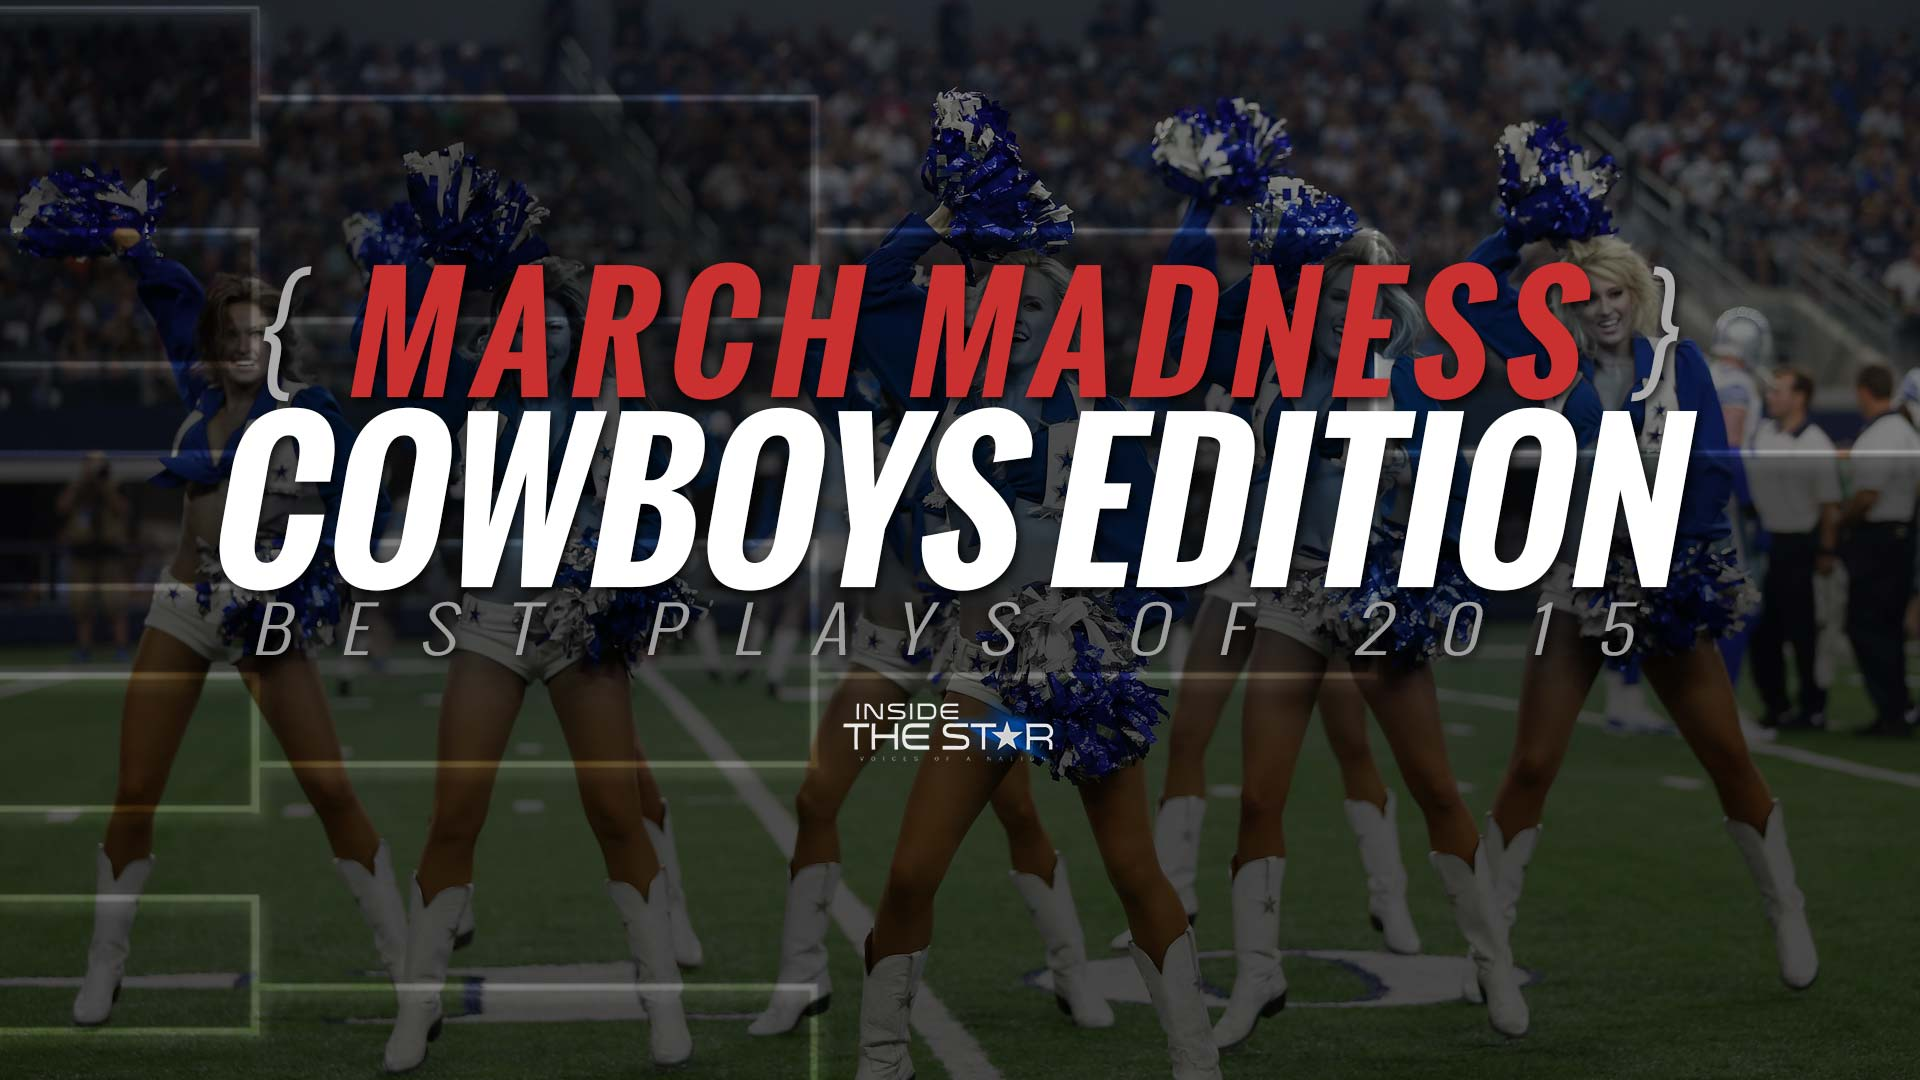 The Star News - March Madness: Cowboys Edition, Sweet Sixteen